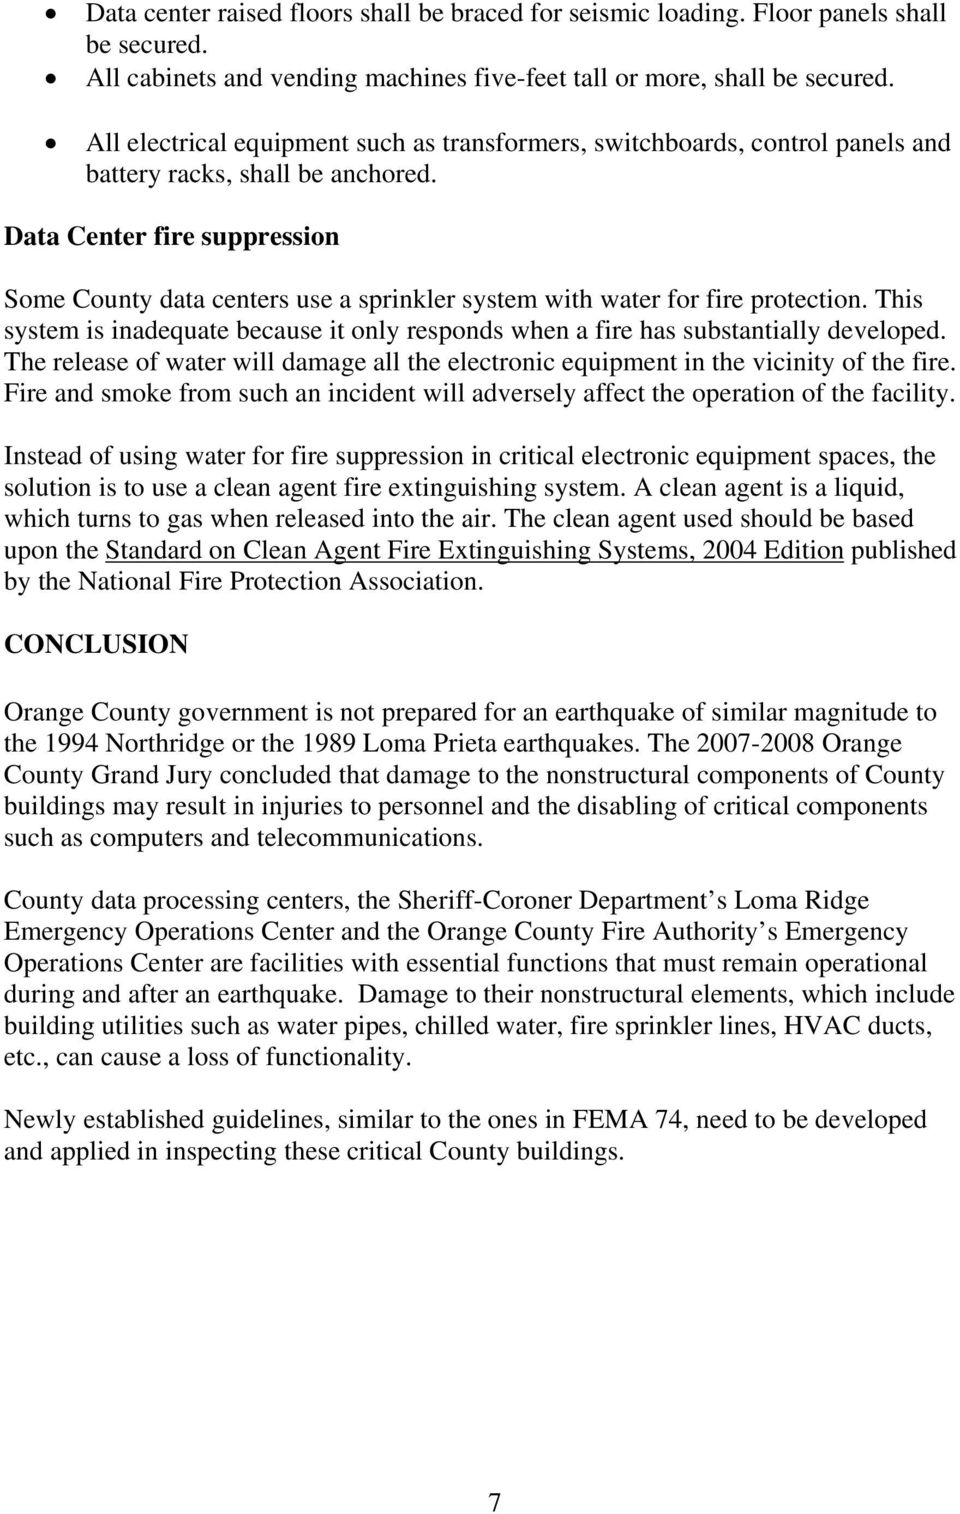 Data Center fire suppression Some County data centers use a sprinkler system with water for fire protection. This system is inadequate because it only responds when a fire has substantially developed.